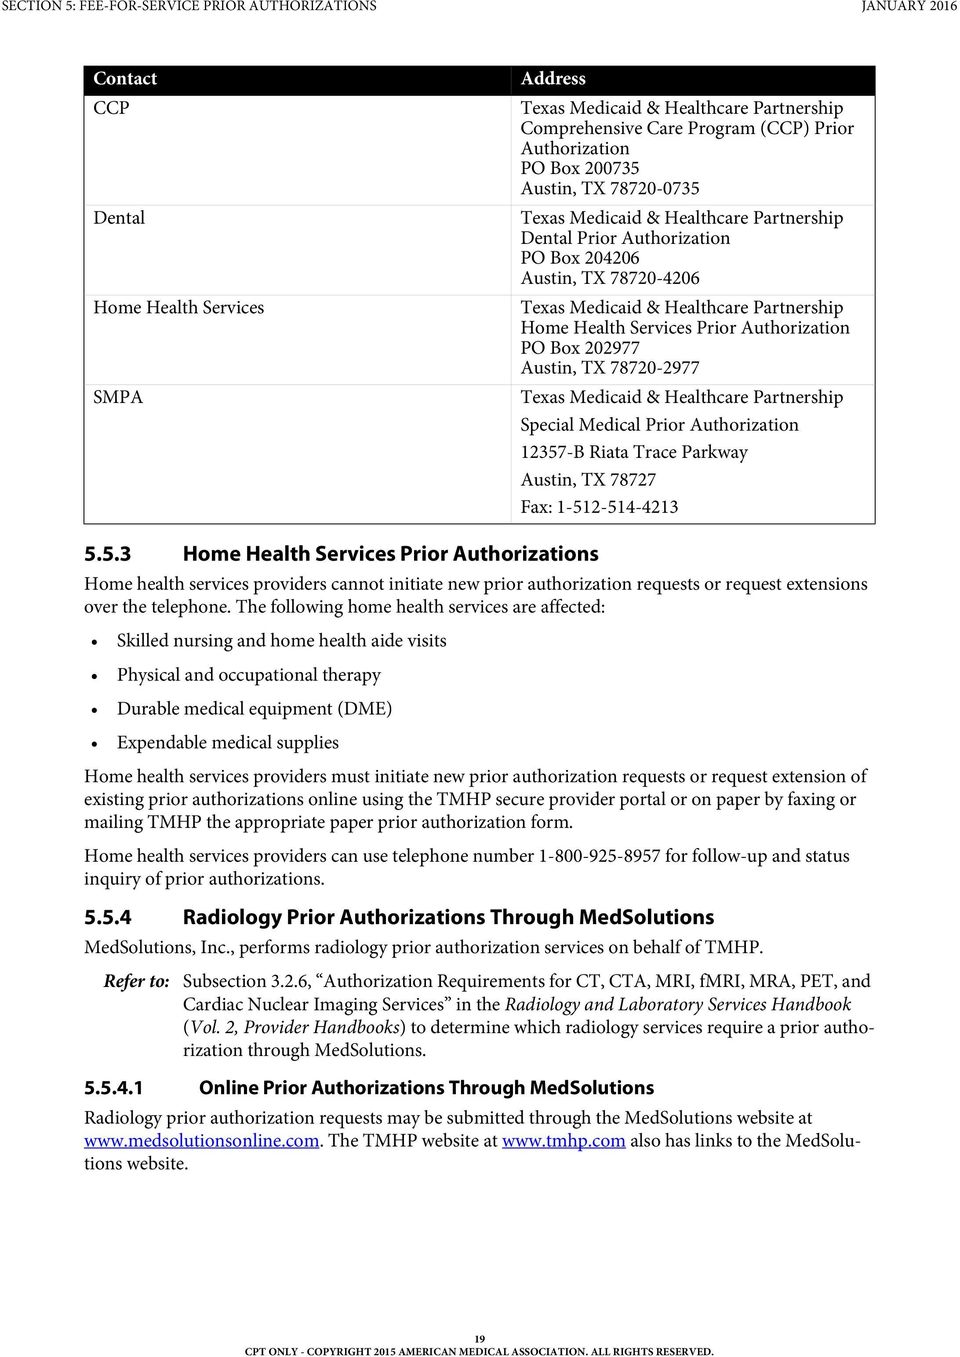 SECTION 5 FEE FOR SERVICE PRIOR AUTHORIZATIONS TEXAS